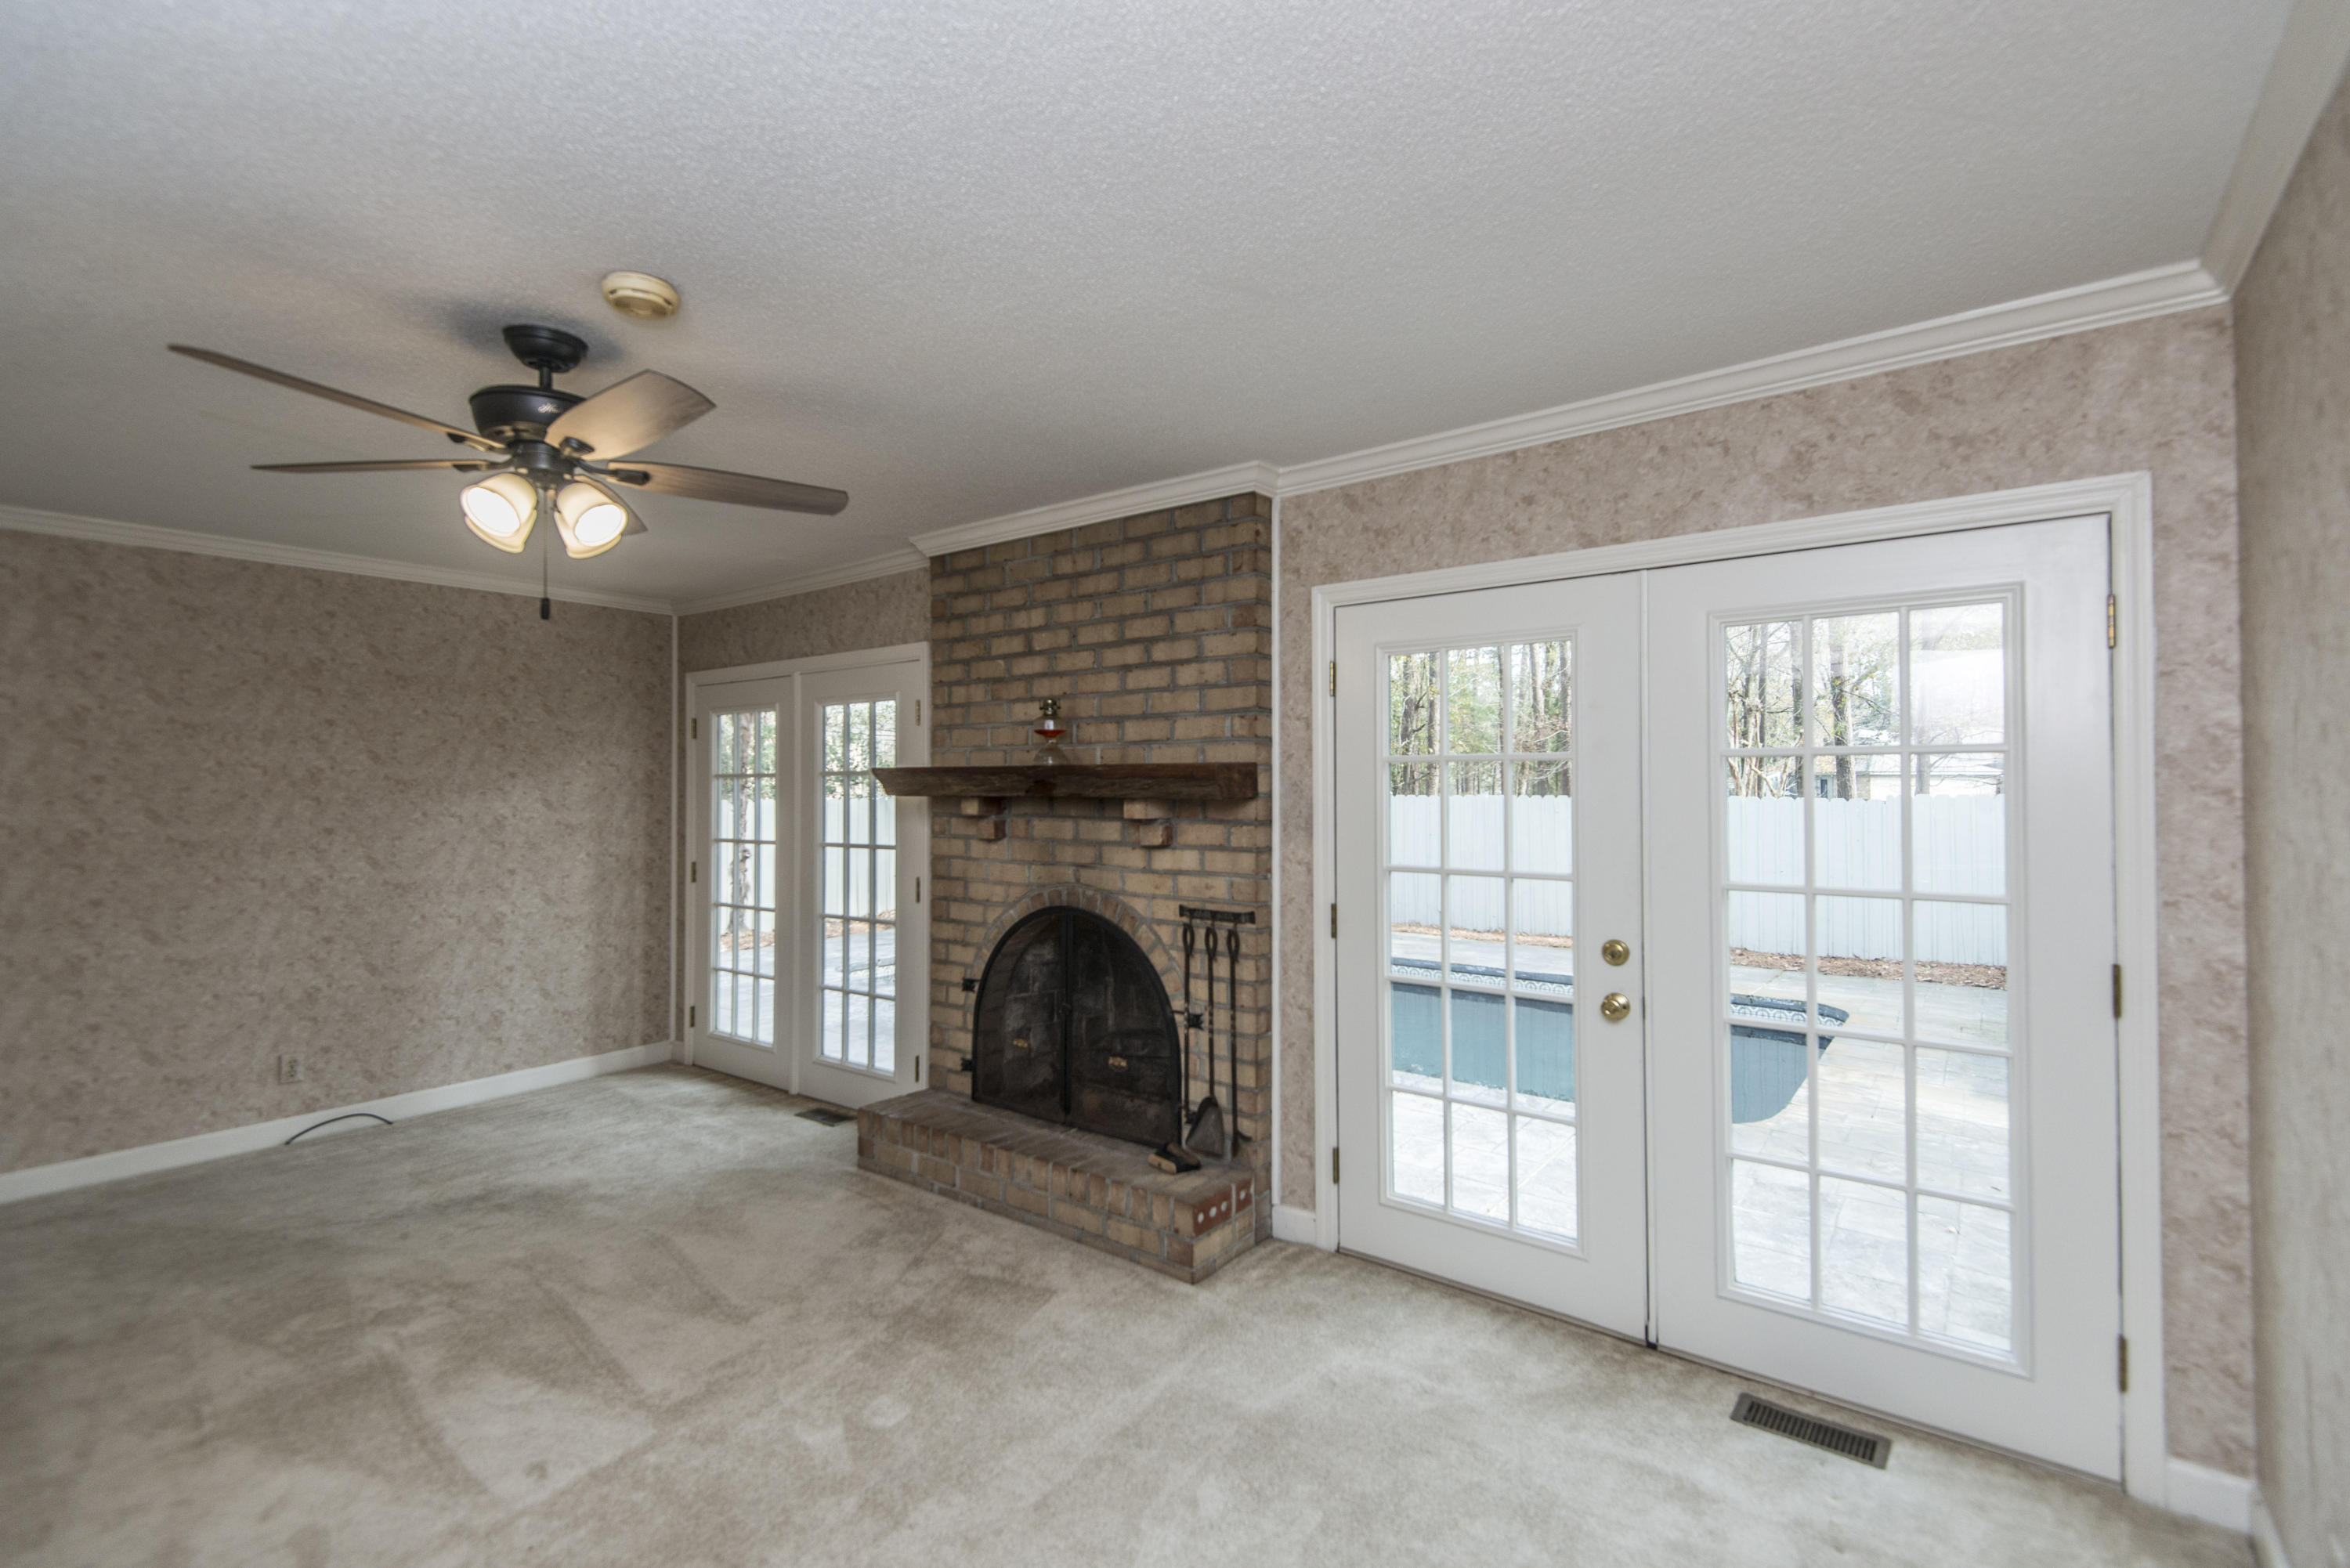 Kings Grant Homes For Sale - 102 Candlewood, Summerville, SC - 32